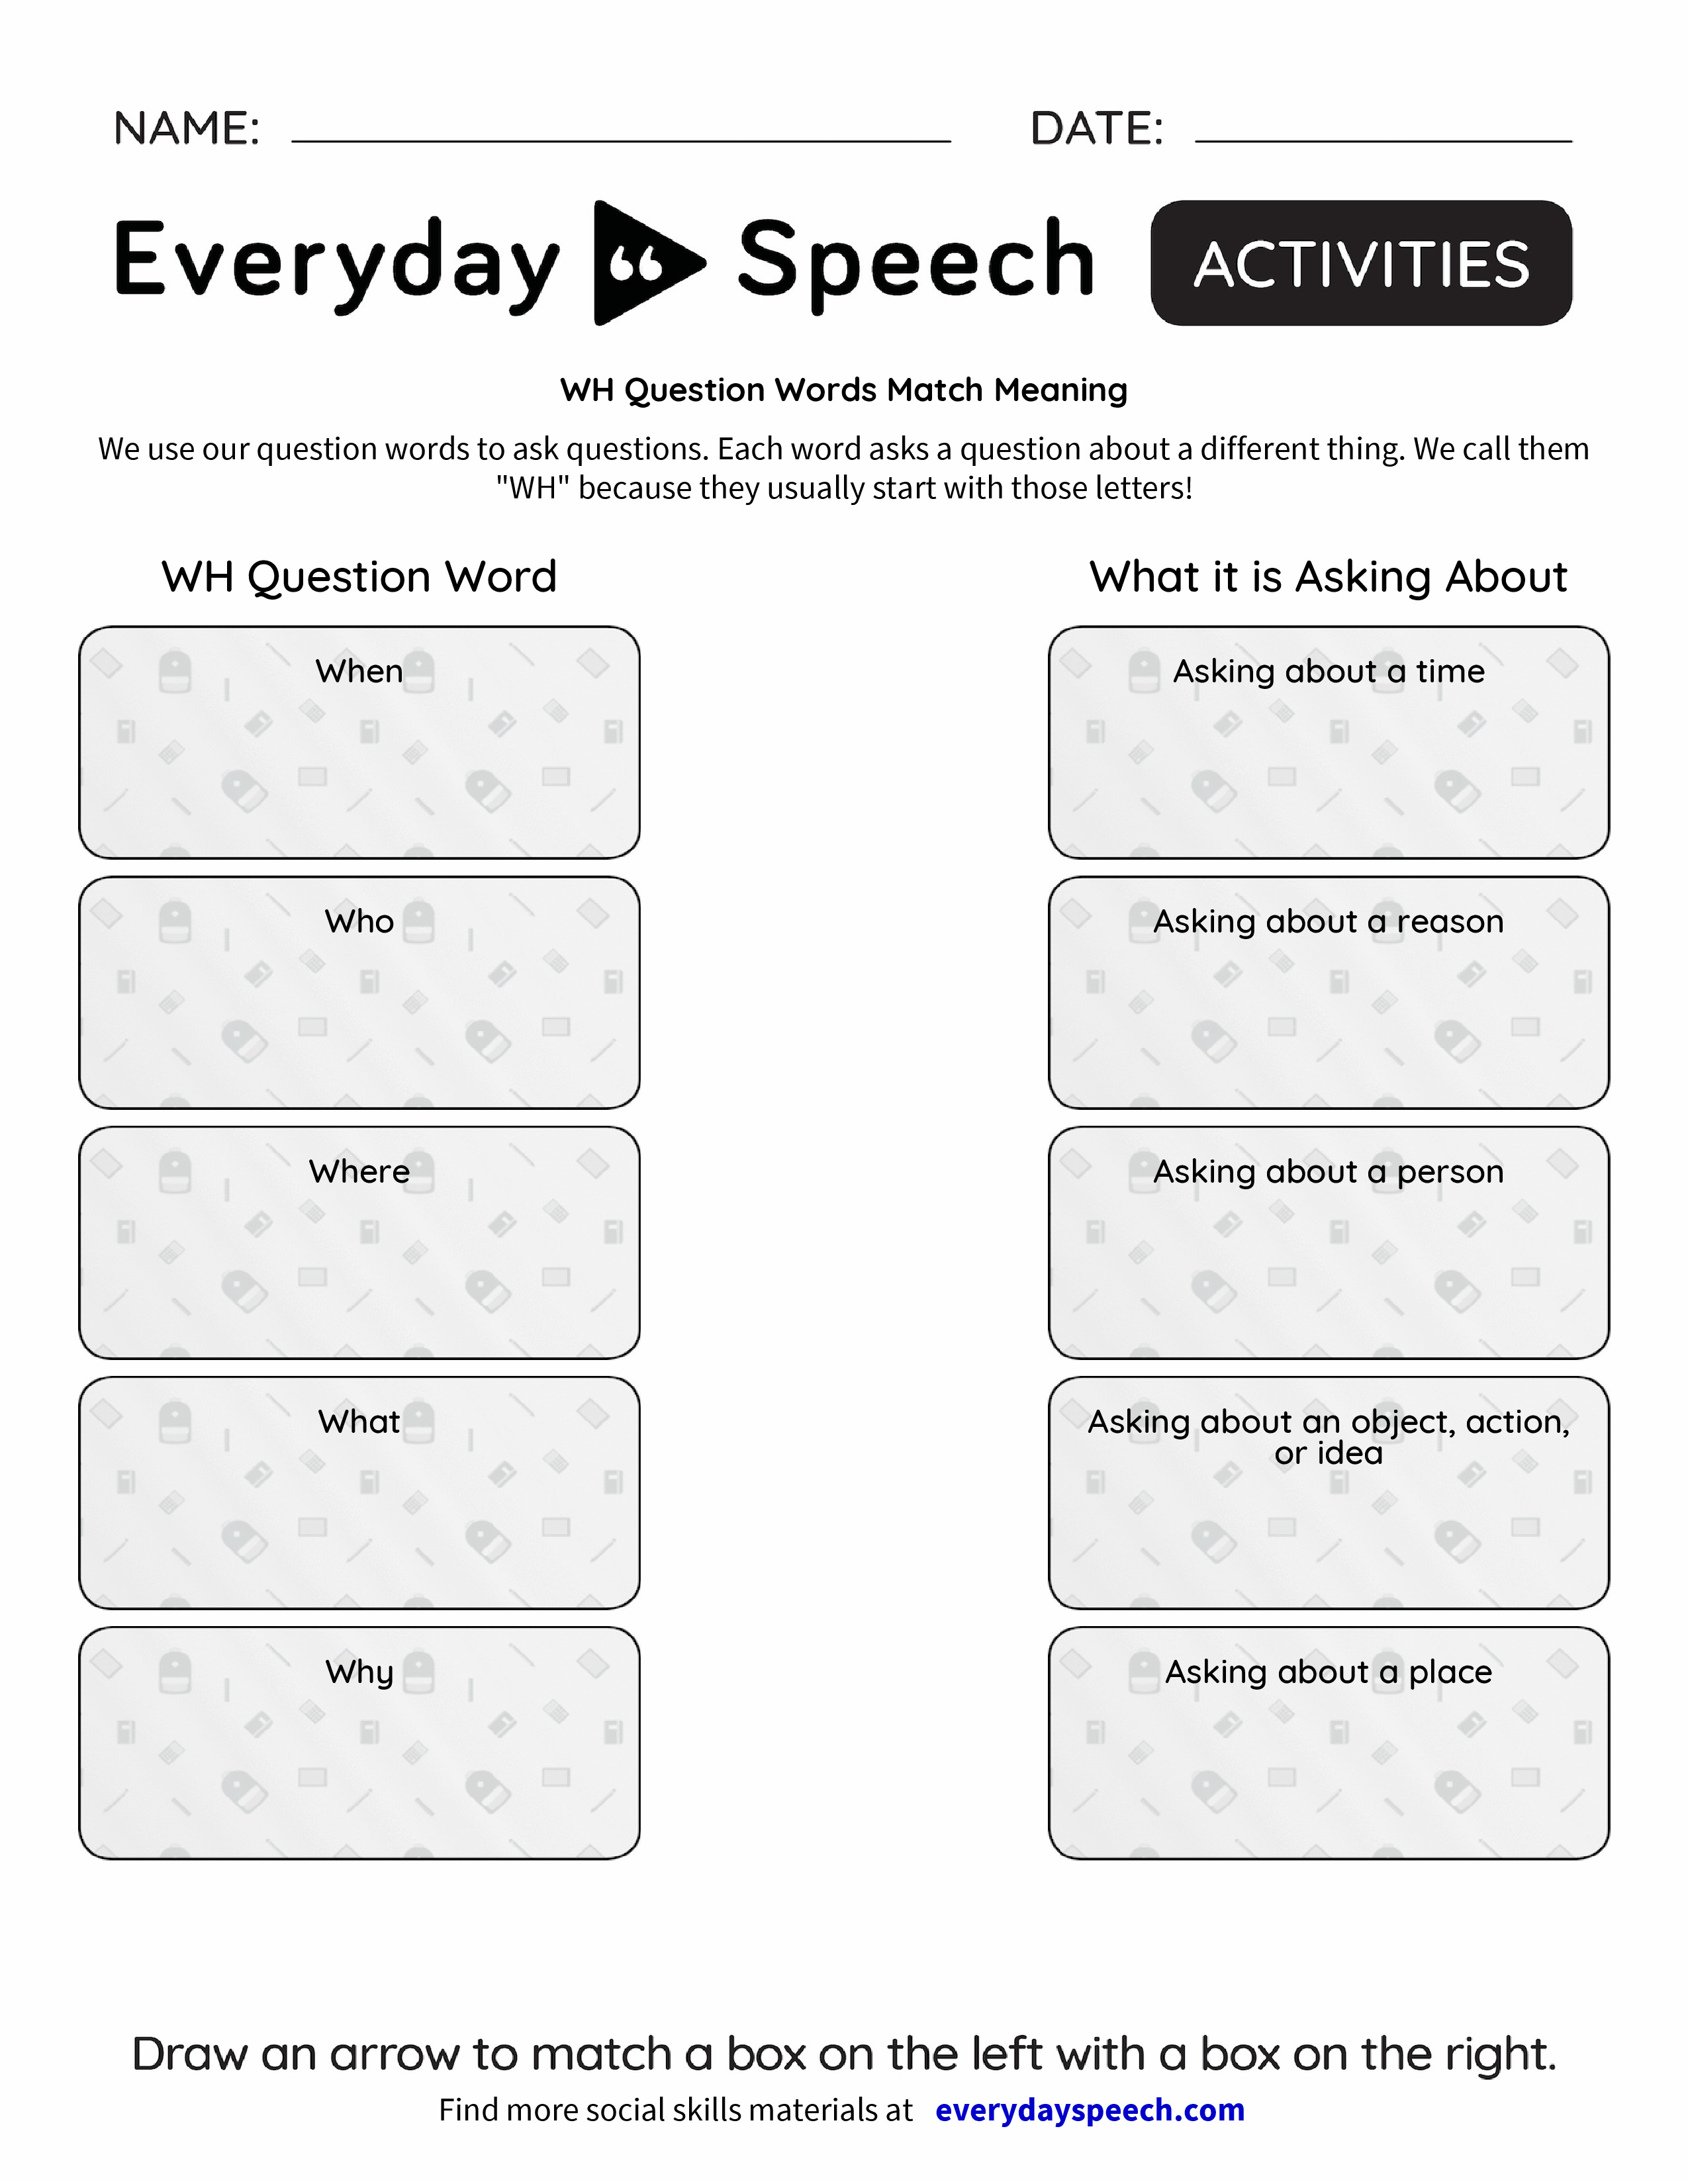 WH Question Words Match Meaning - Everyday Speech - Everyday